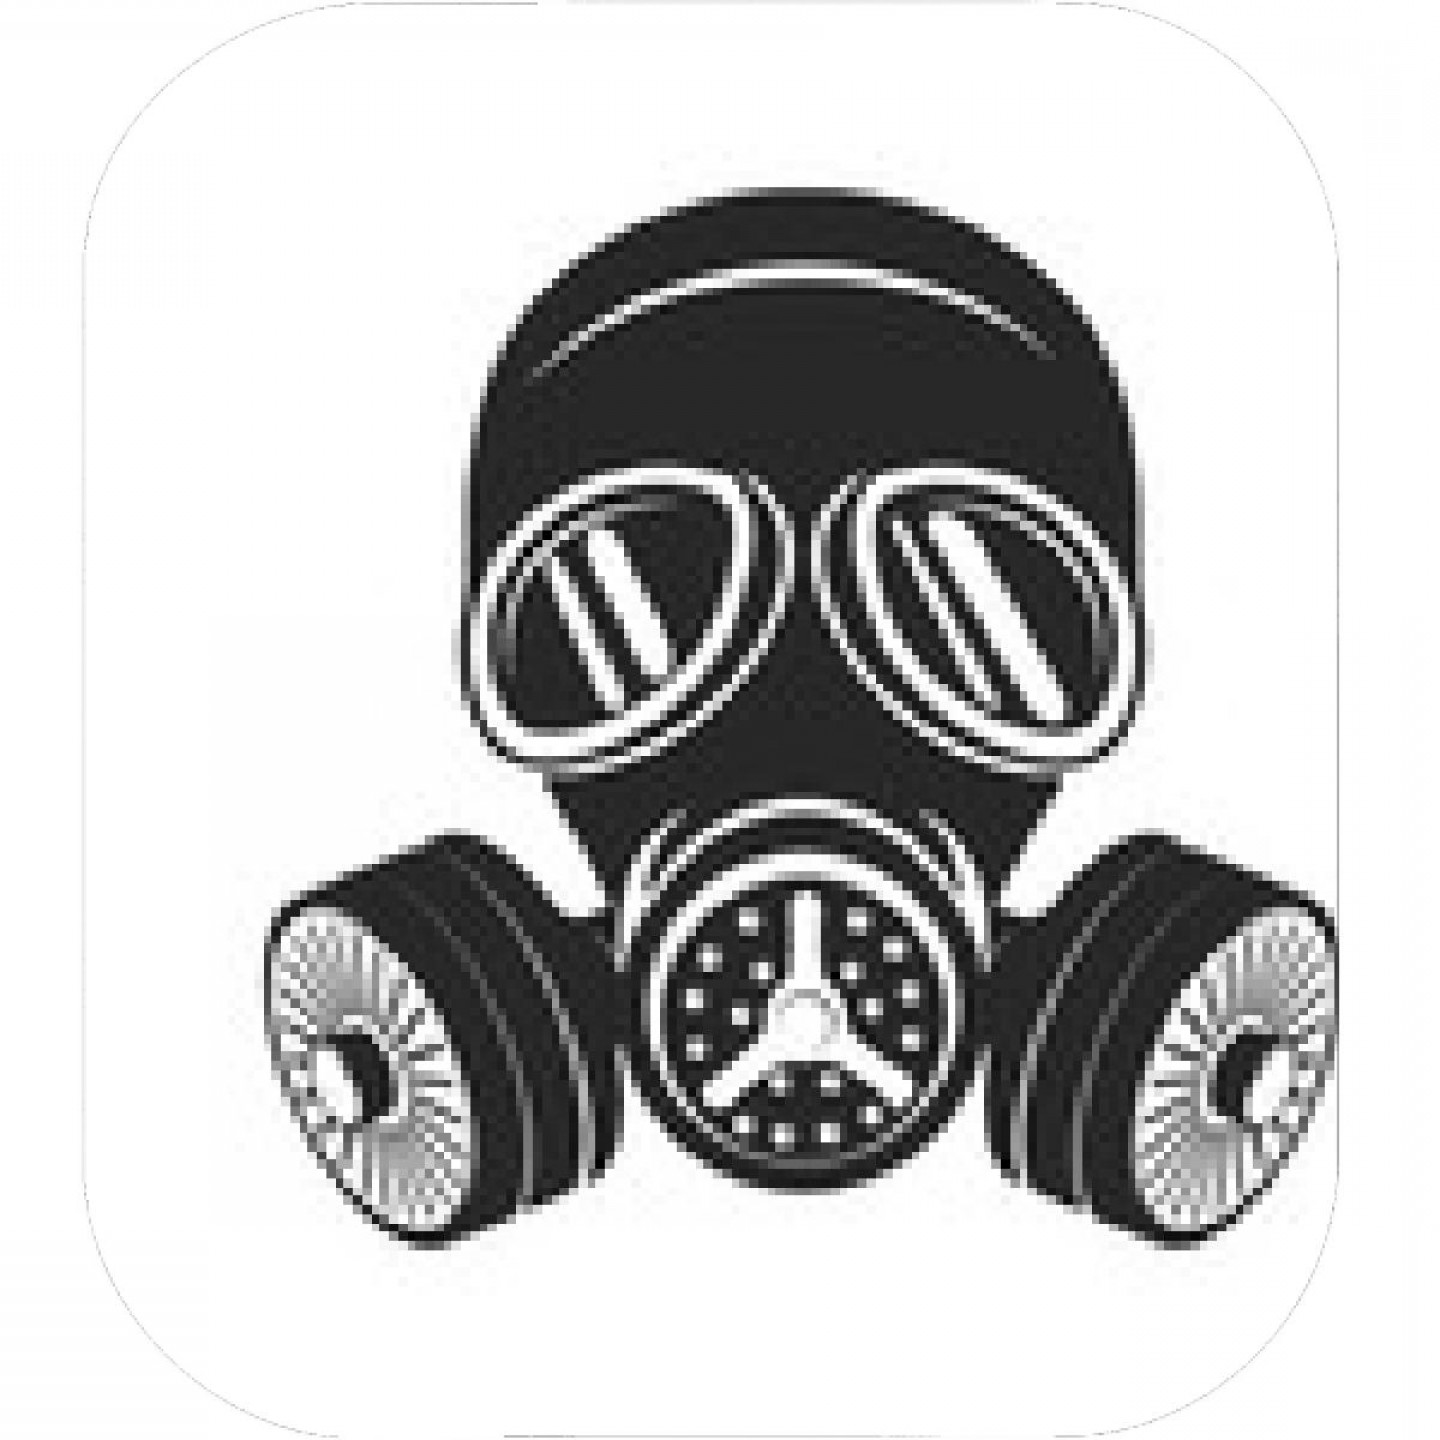 Gas Mask Suit And Tie Vector: Gas Mask Emblem On White Background Vector Illustration